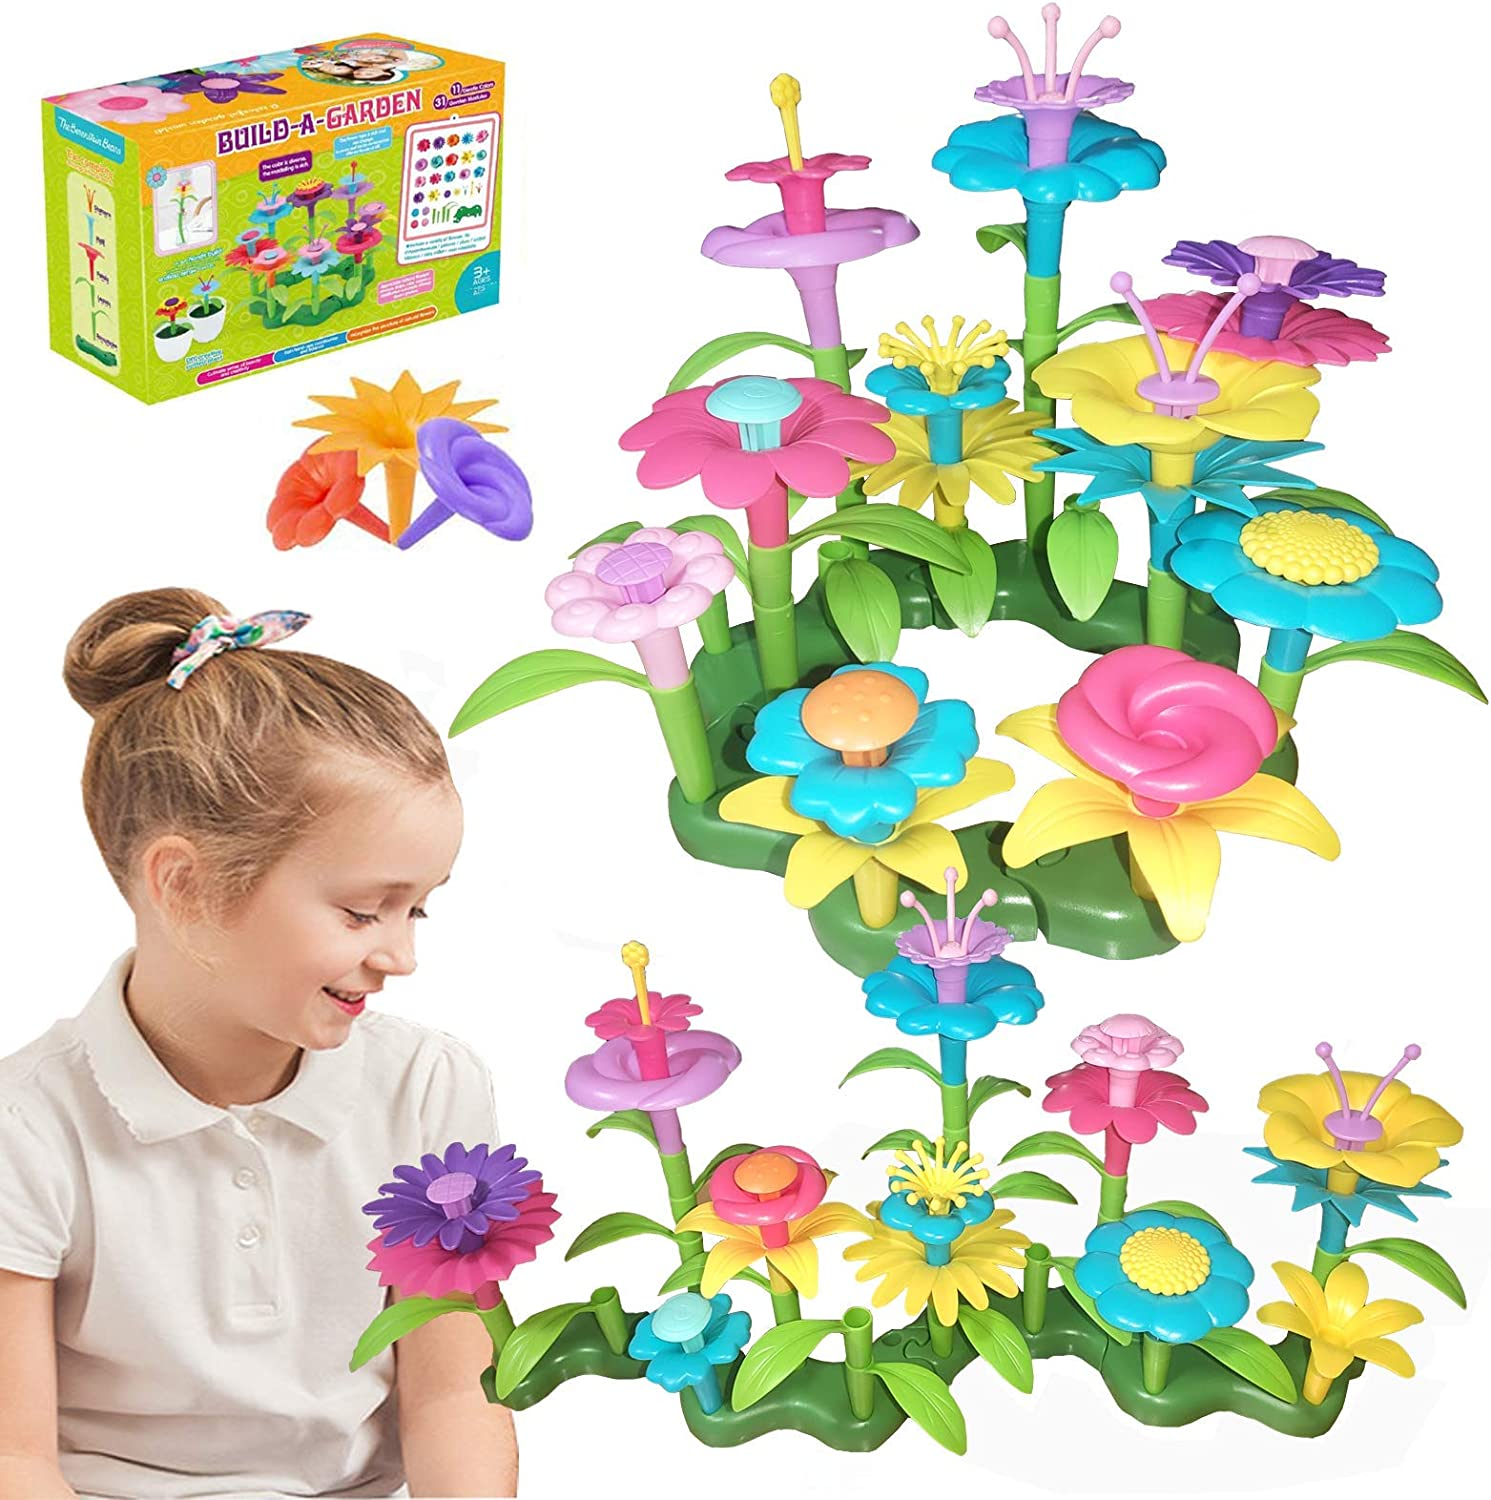 Ideal Christmas Birthday Gifts for 3 4 5 6 Age Boys and Girls(46PCS) Oleoly Flower Garden Building Toys for Kids Preschool Toddler Building STEM Education Activities Build Bouquet Sets